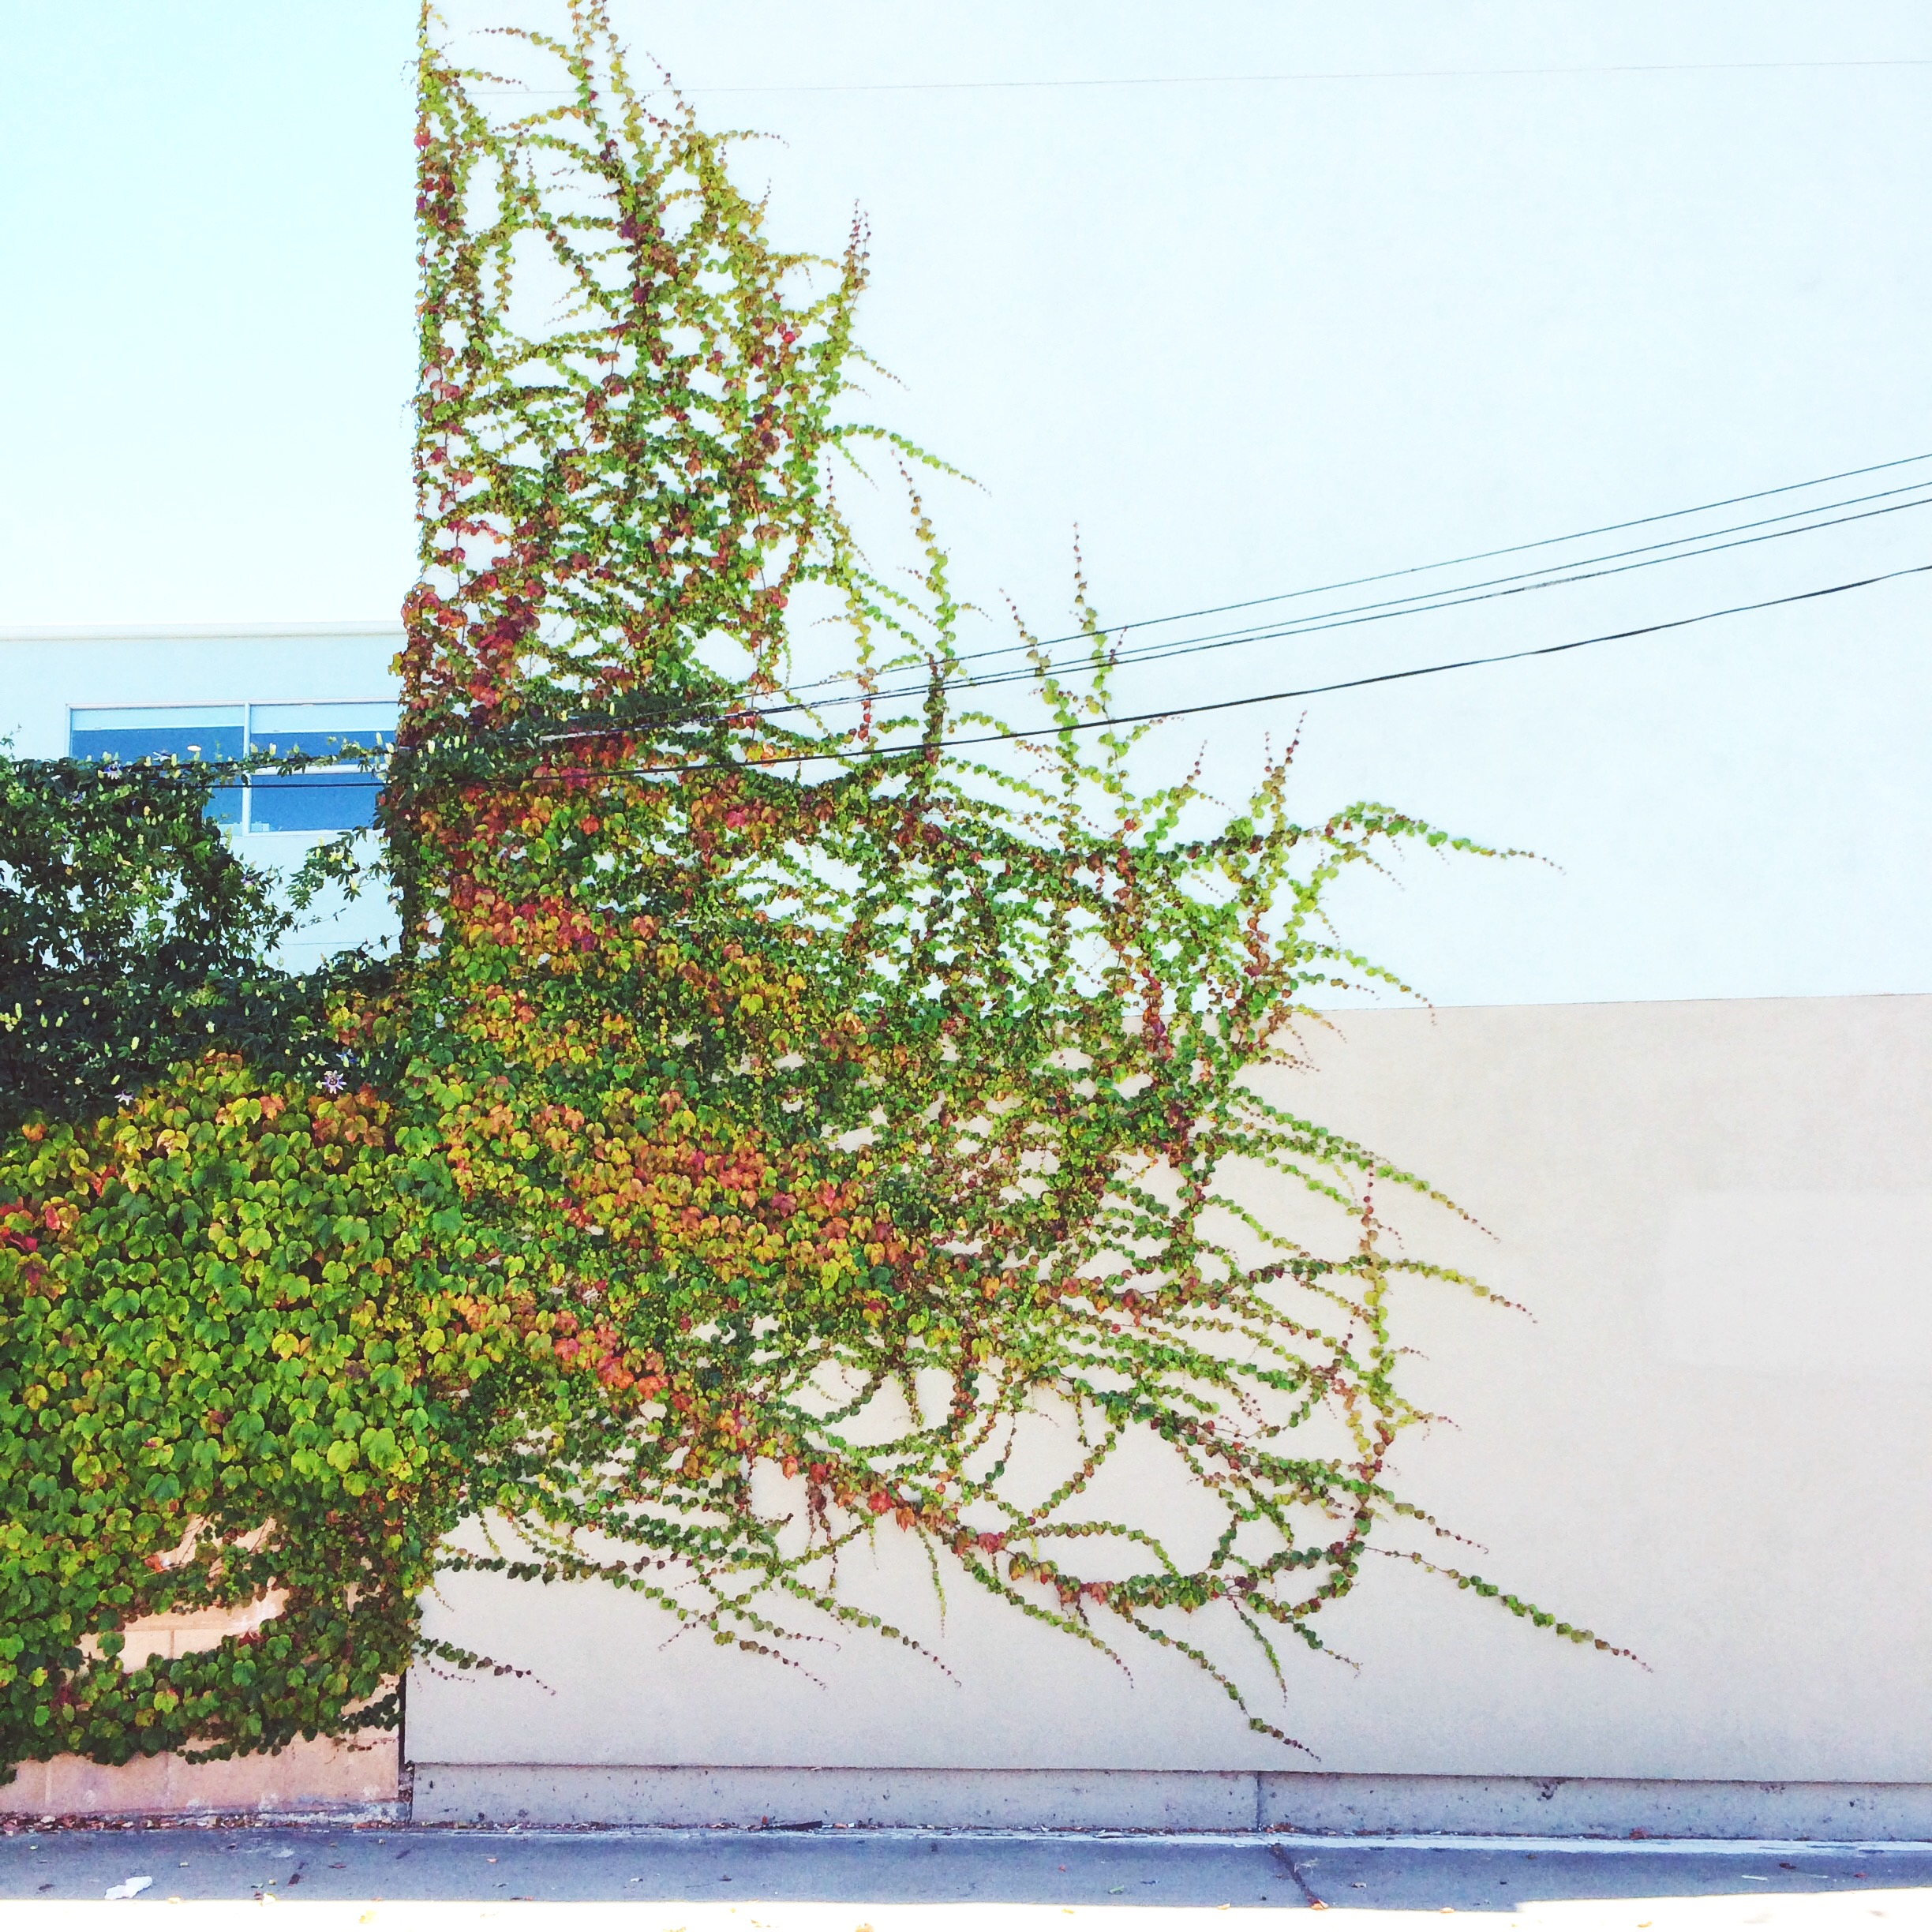 [Image of green and red vines growing on the side of a building.P  hoto by Mia Mingus  ]